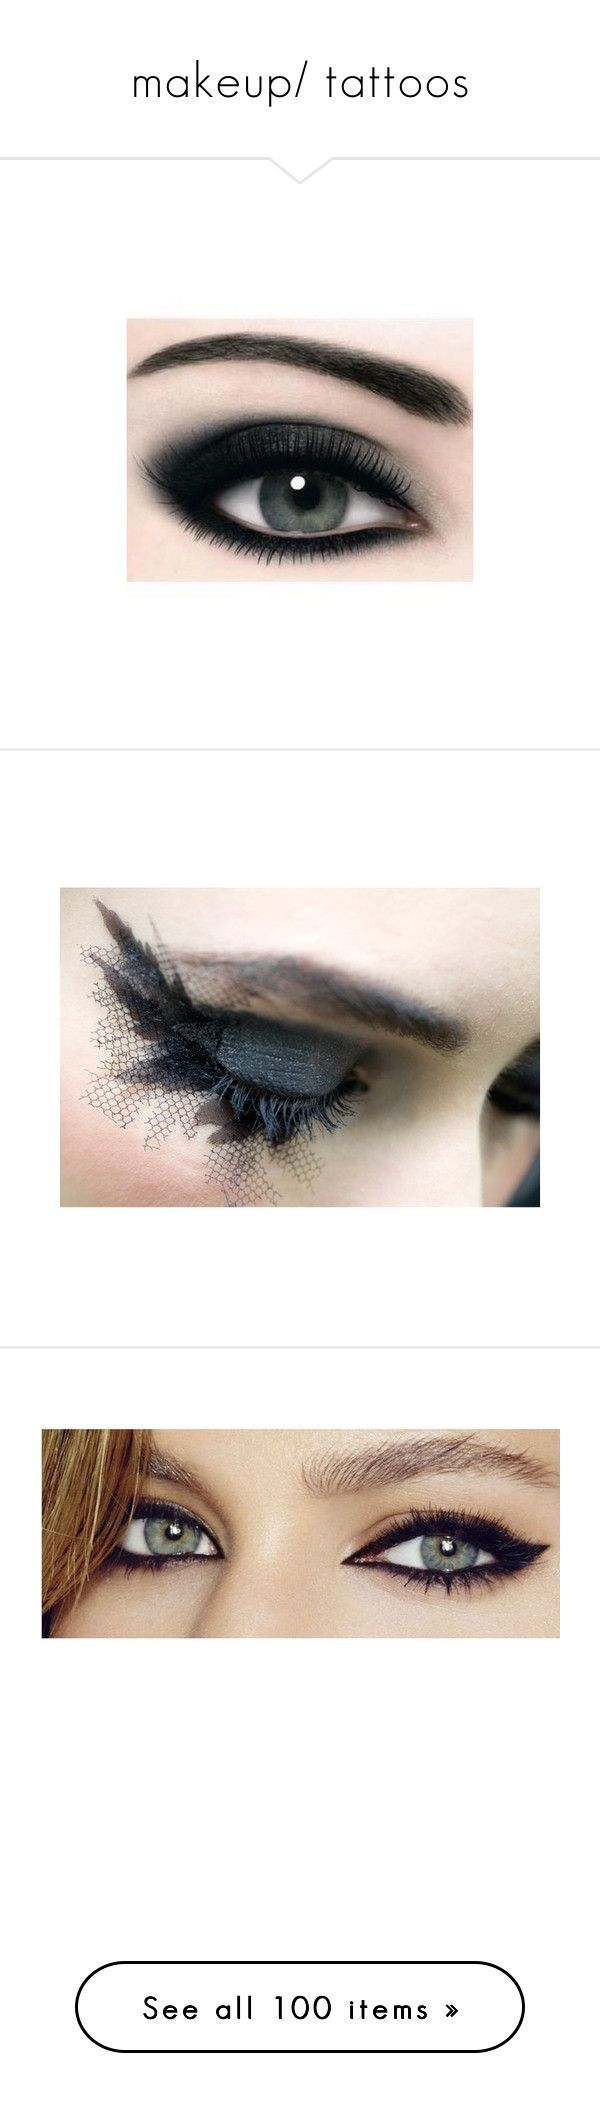 """""""makeup/ tattoos"""" by rock-with-it ❤ liked on Polyvore featuring beauty products, makeup, eye makeup, eyeshadow, eyes, beauty, max factor eye shadow, max factor, max factor eyeshadow and backgrounds"""